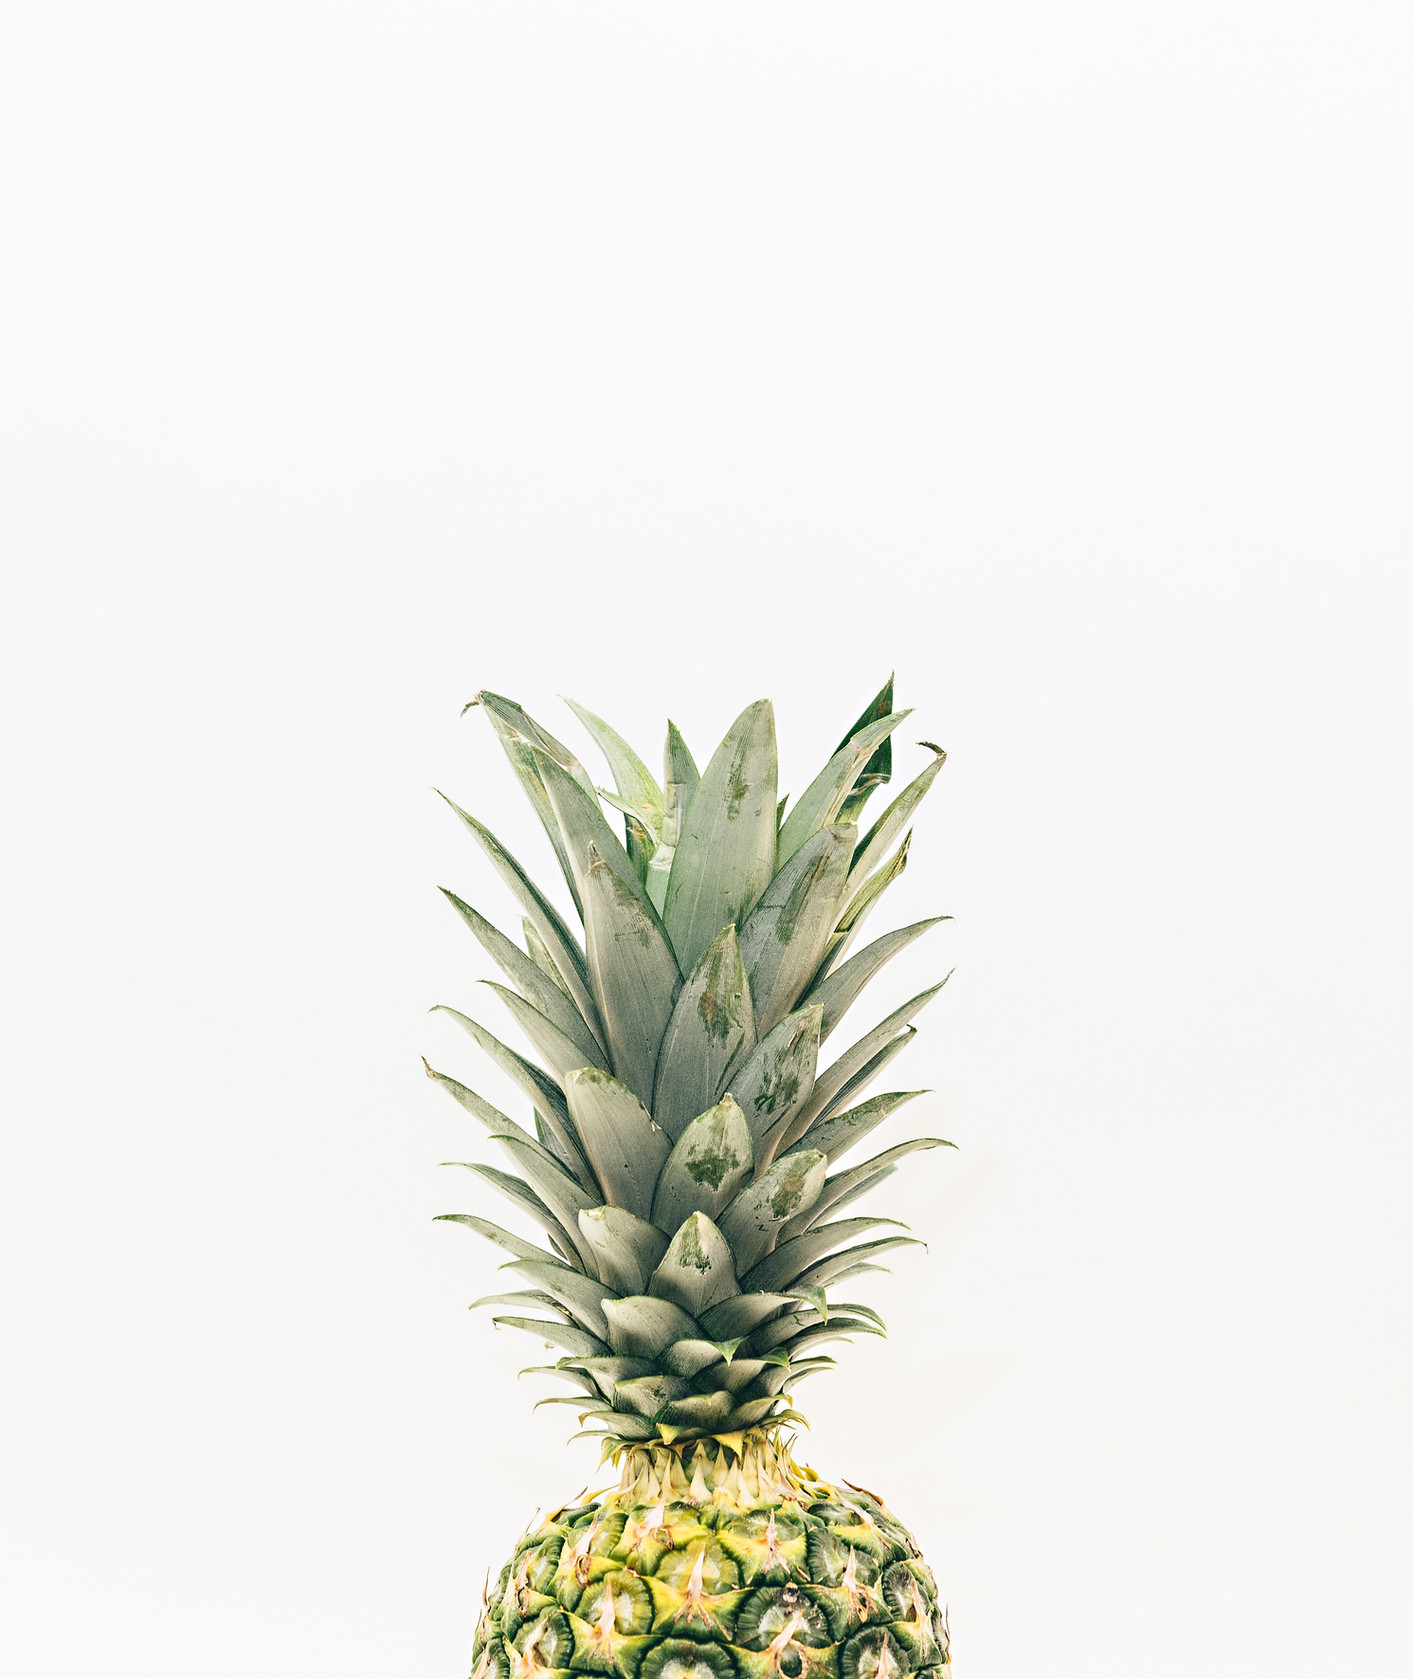 pineapple-supply-co-262624-unsplash.jpg